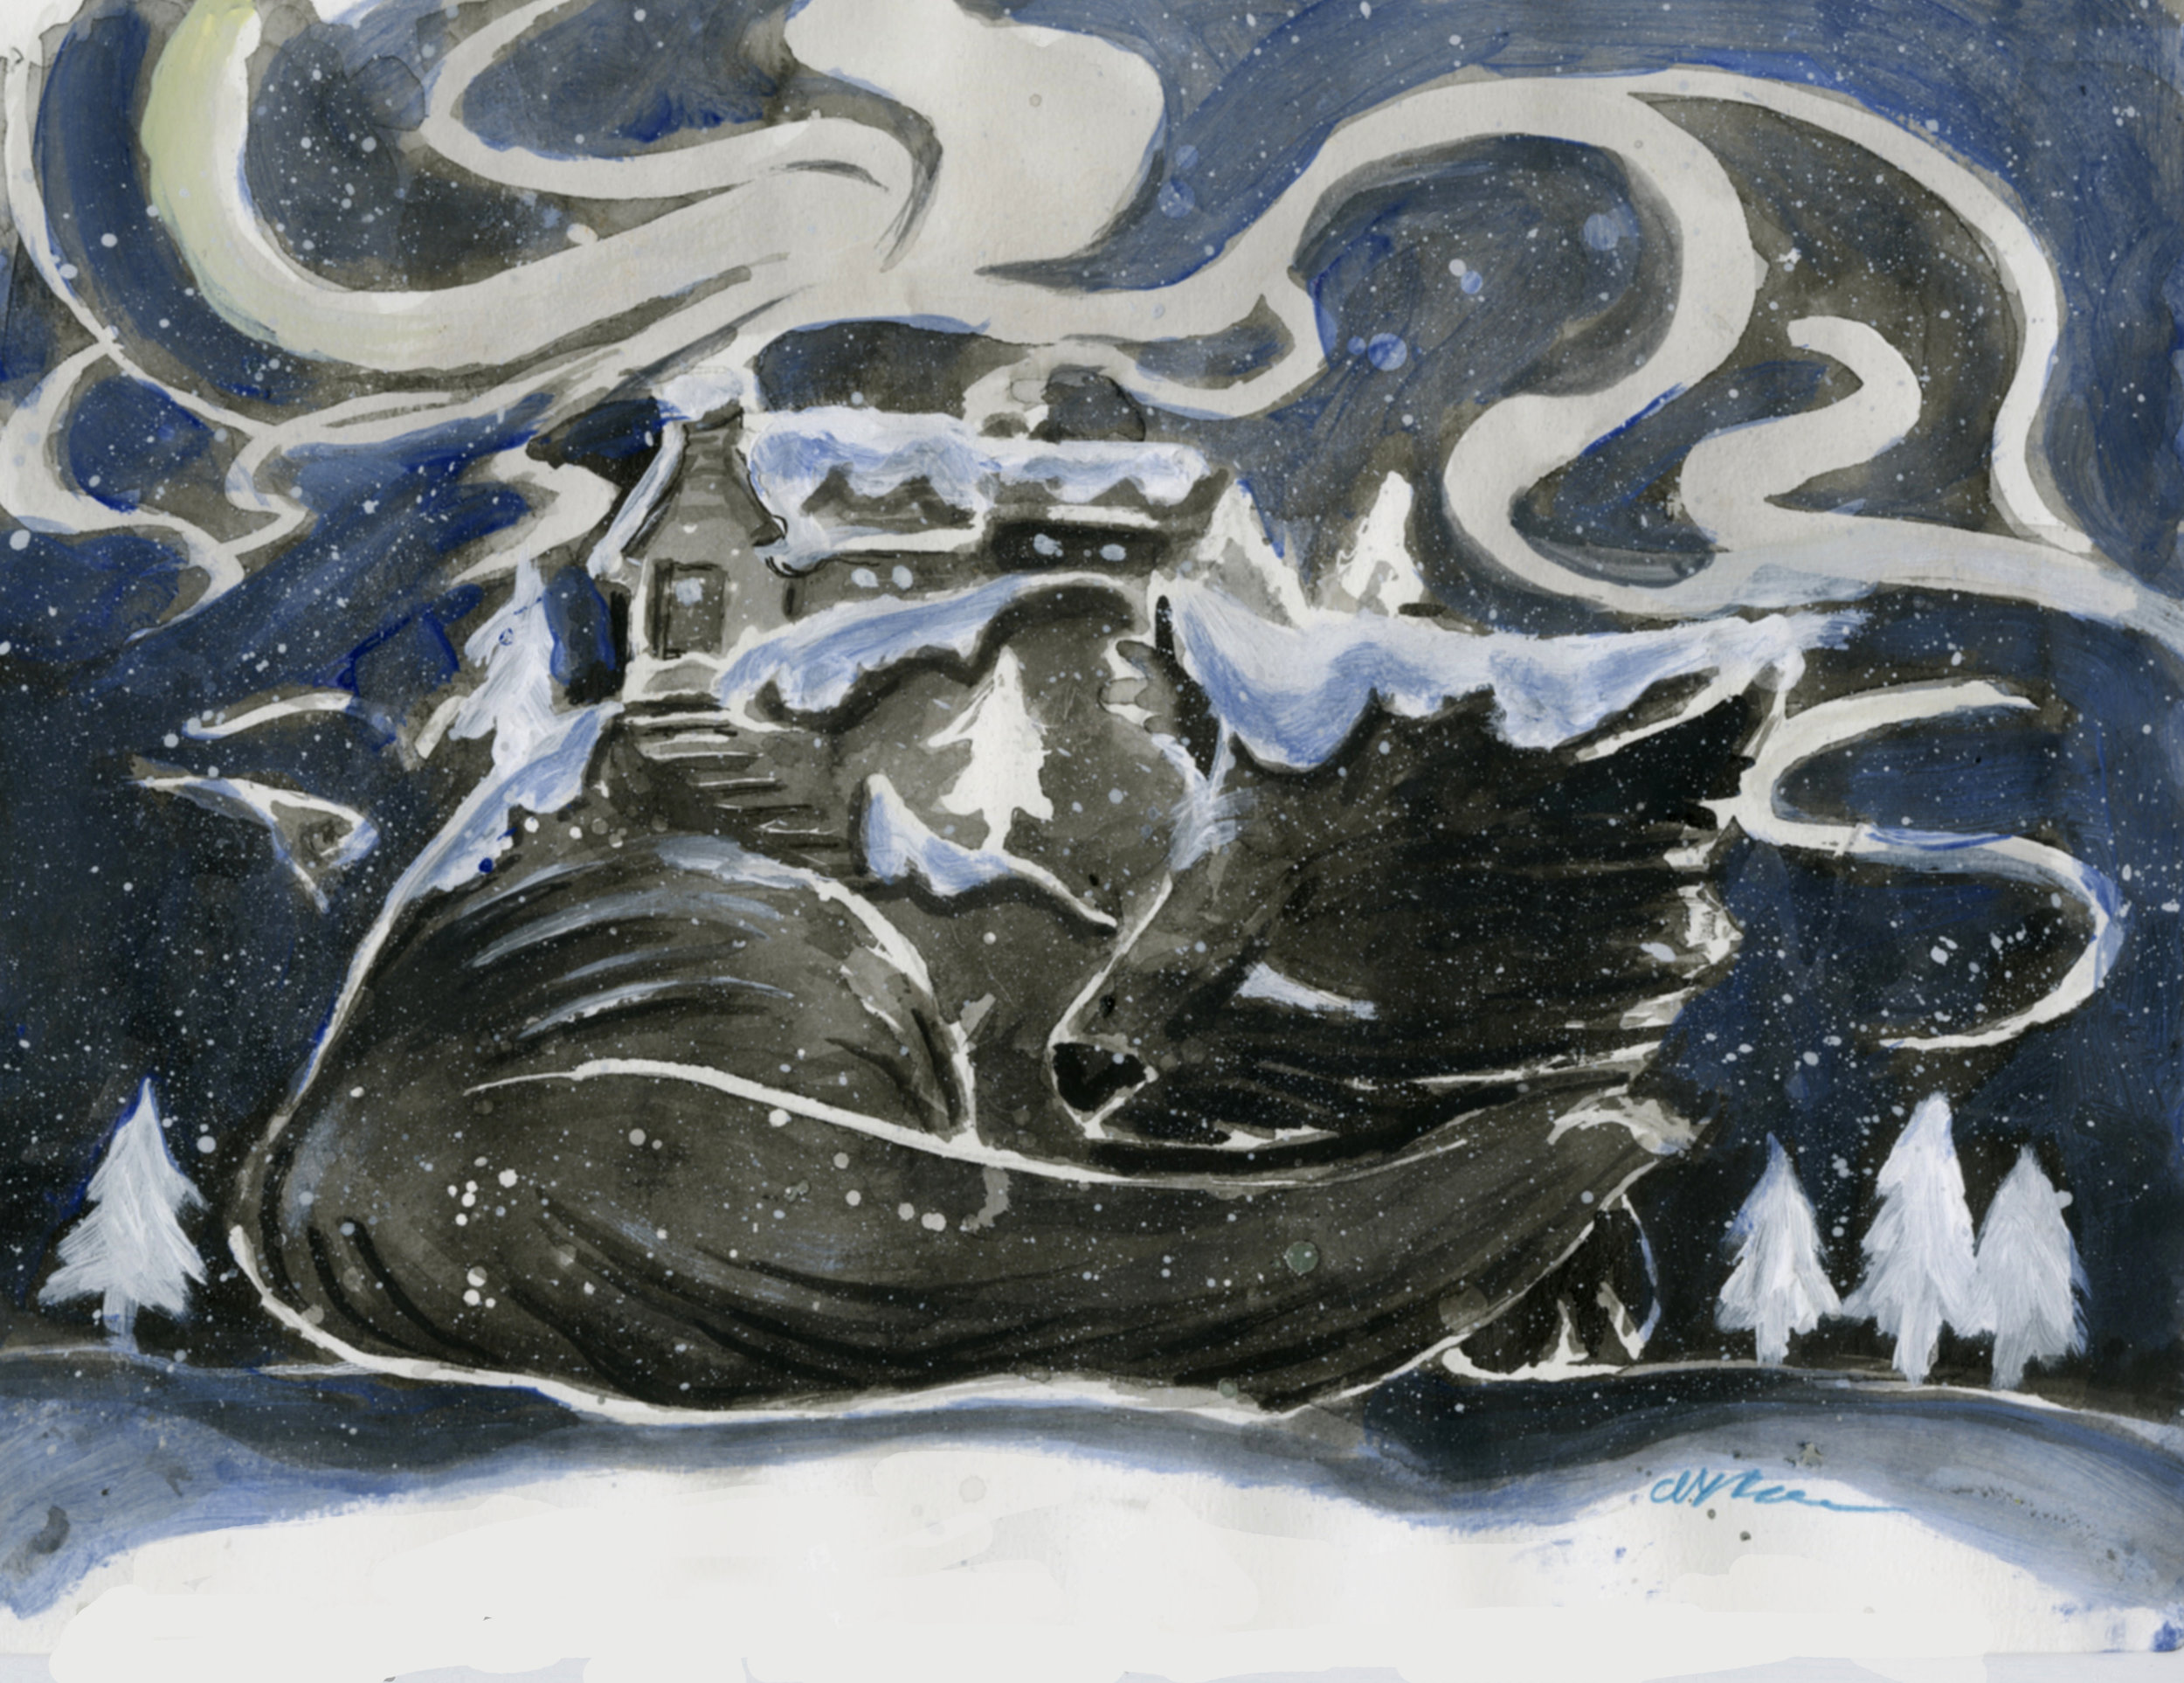 Fox curling up in the snow on a snowy winter night, with a cozy cottage on its back